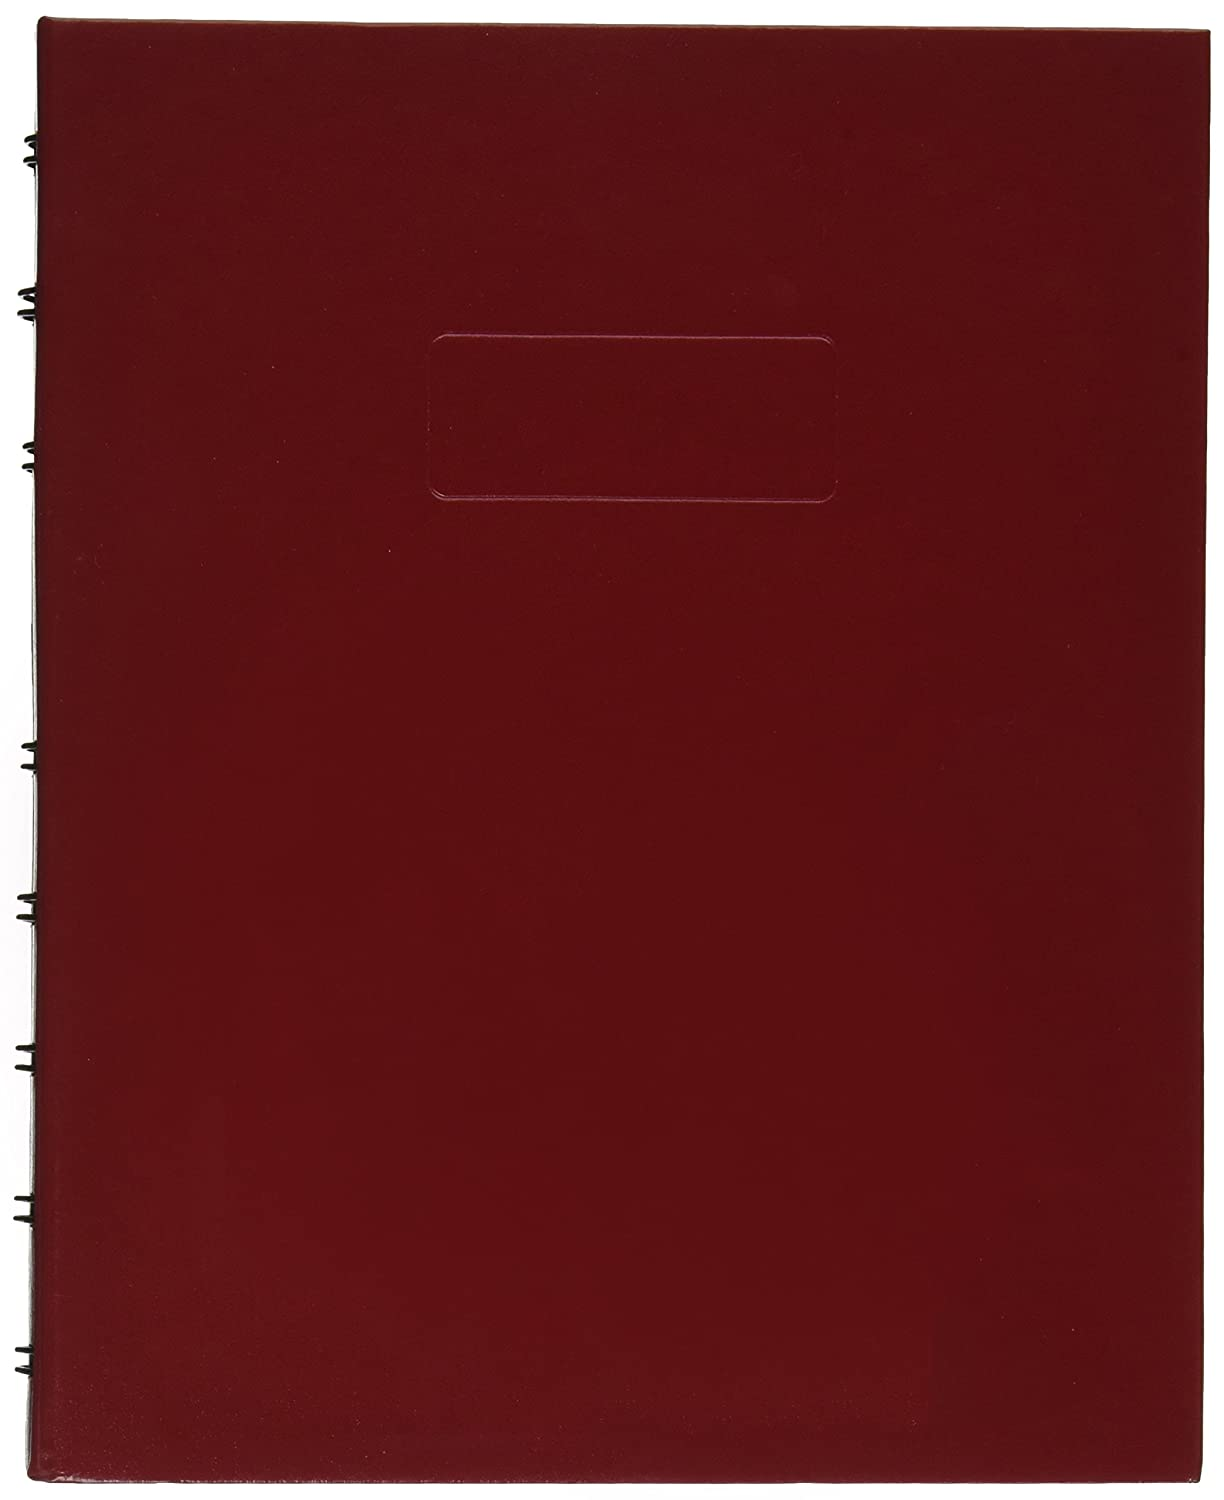 Blueline NotePro Notebook 9.25x7.25-Inch 192 Pages, Red (A9C.83)